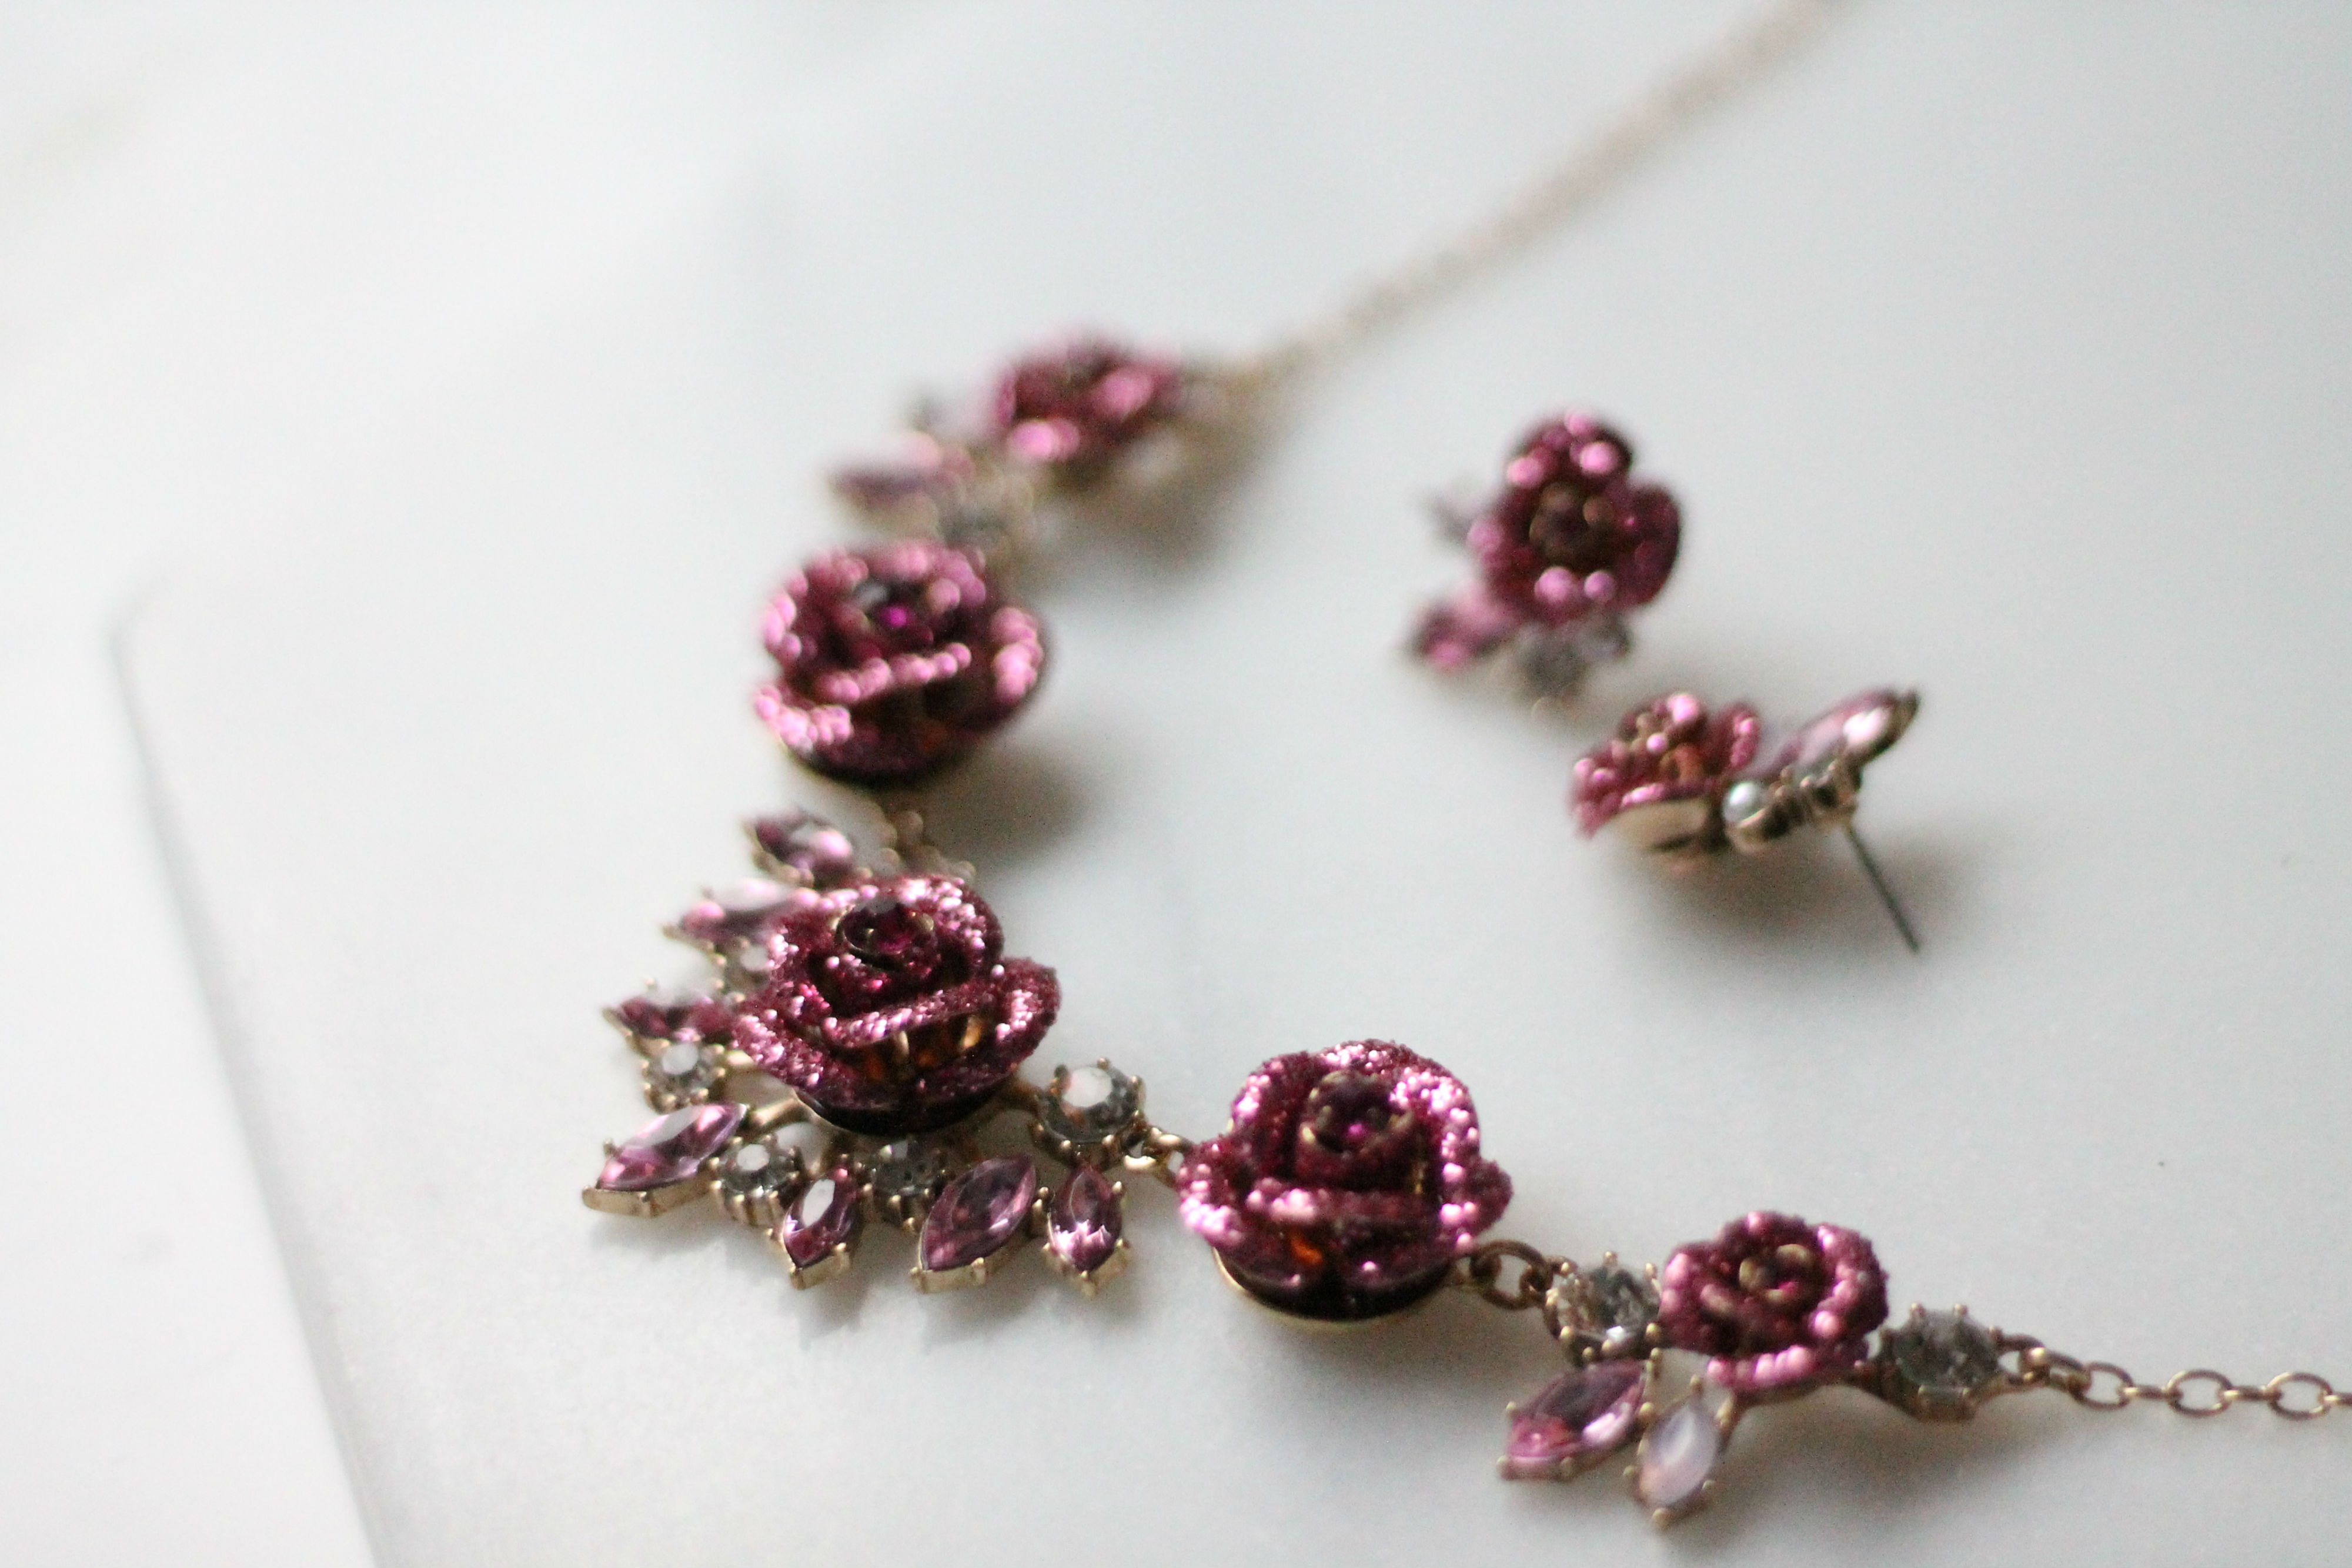 Betsey Johnson Jewelry Glitter Rose Stud Earring and Necklace at Best Buy